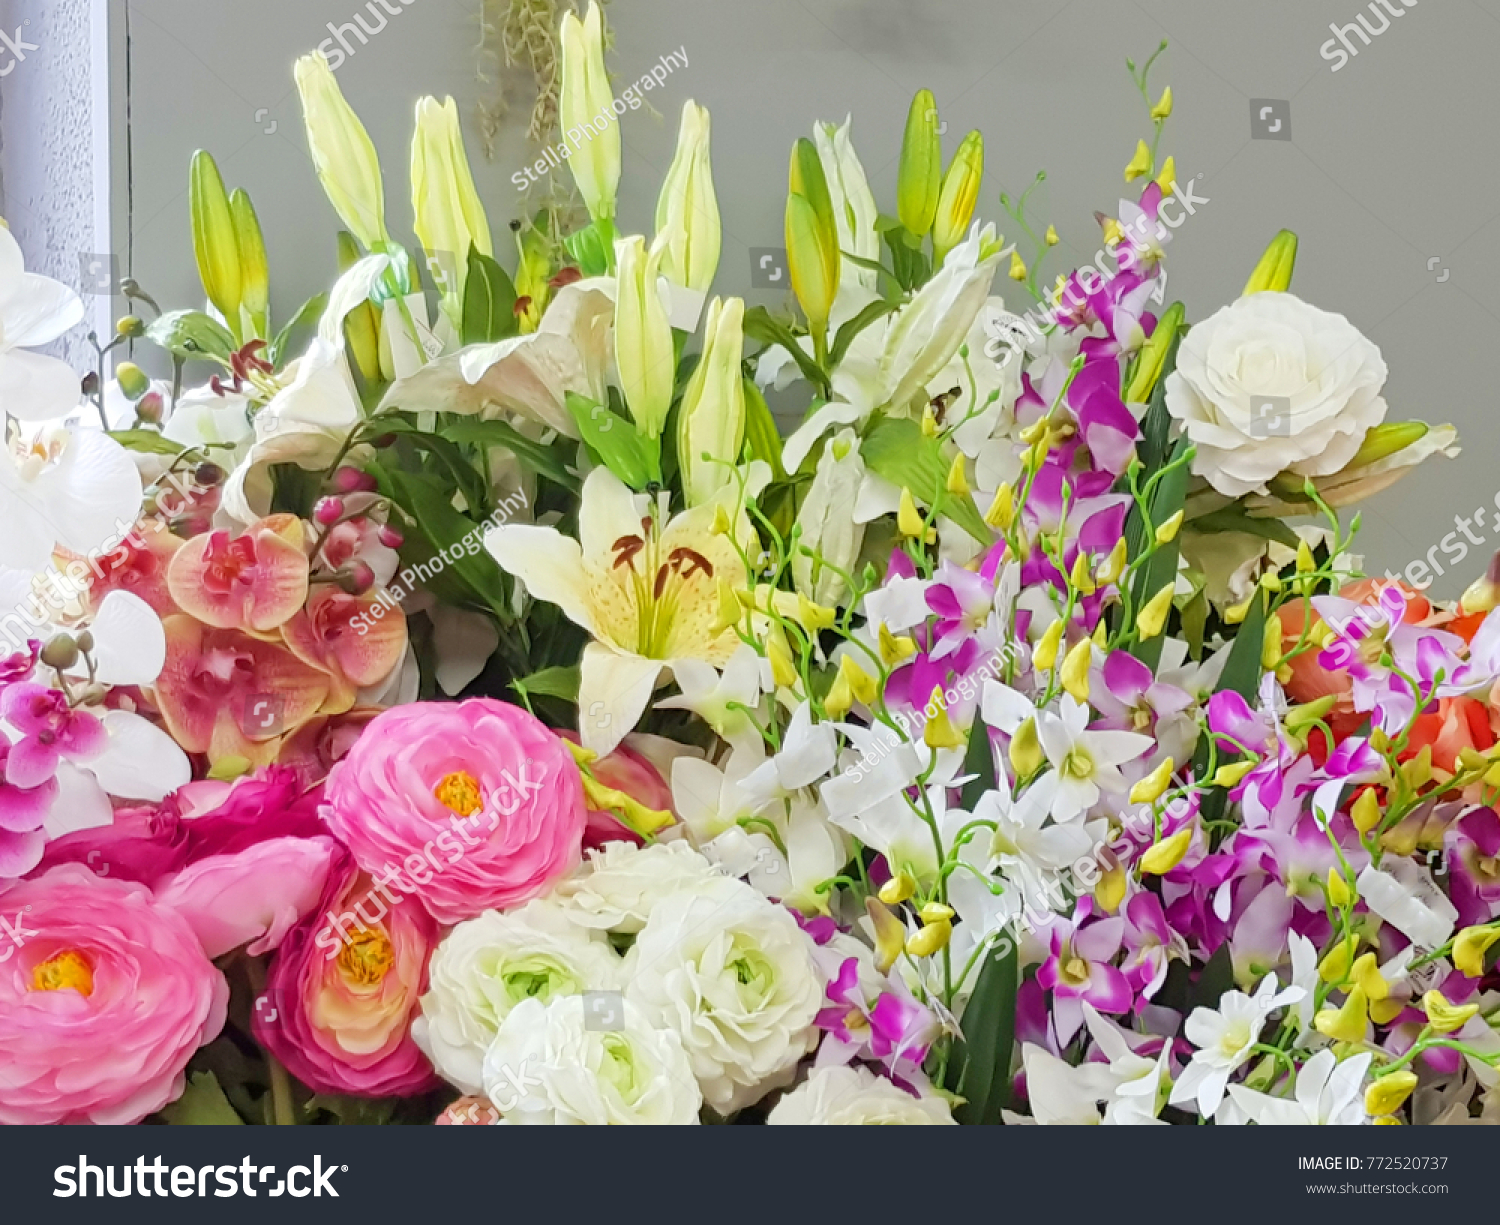 Bright beautiful colors plastic flowers background stock photo edit bright and beautiful colors of plastic flowers background of fake flowers for decorating colorful izmirmasajfo